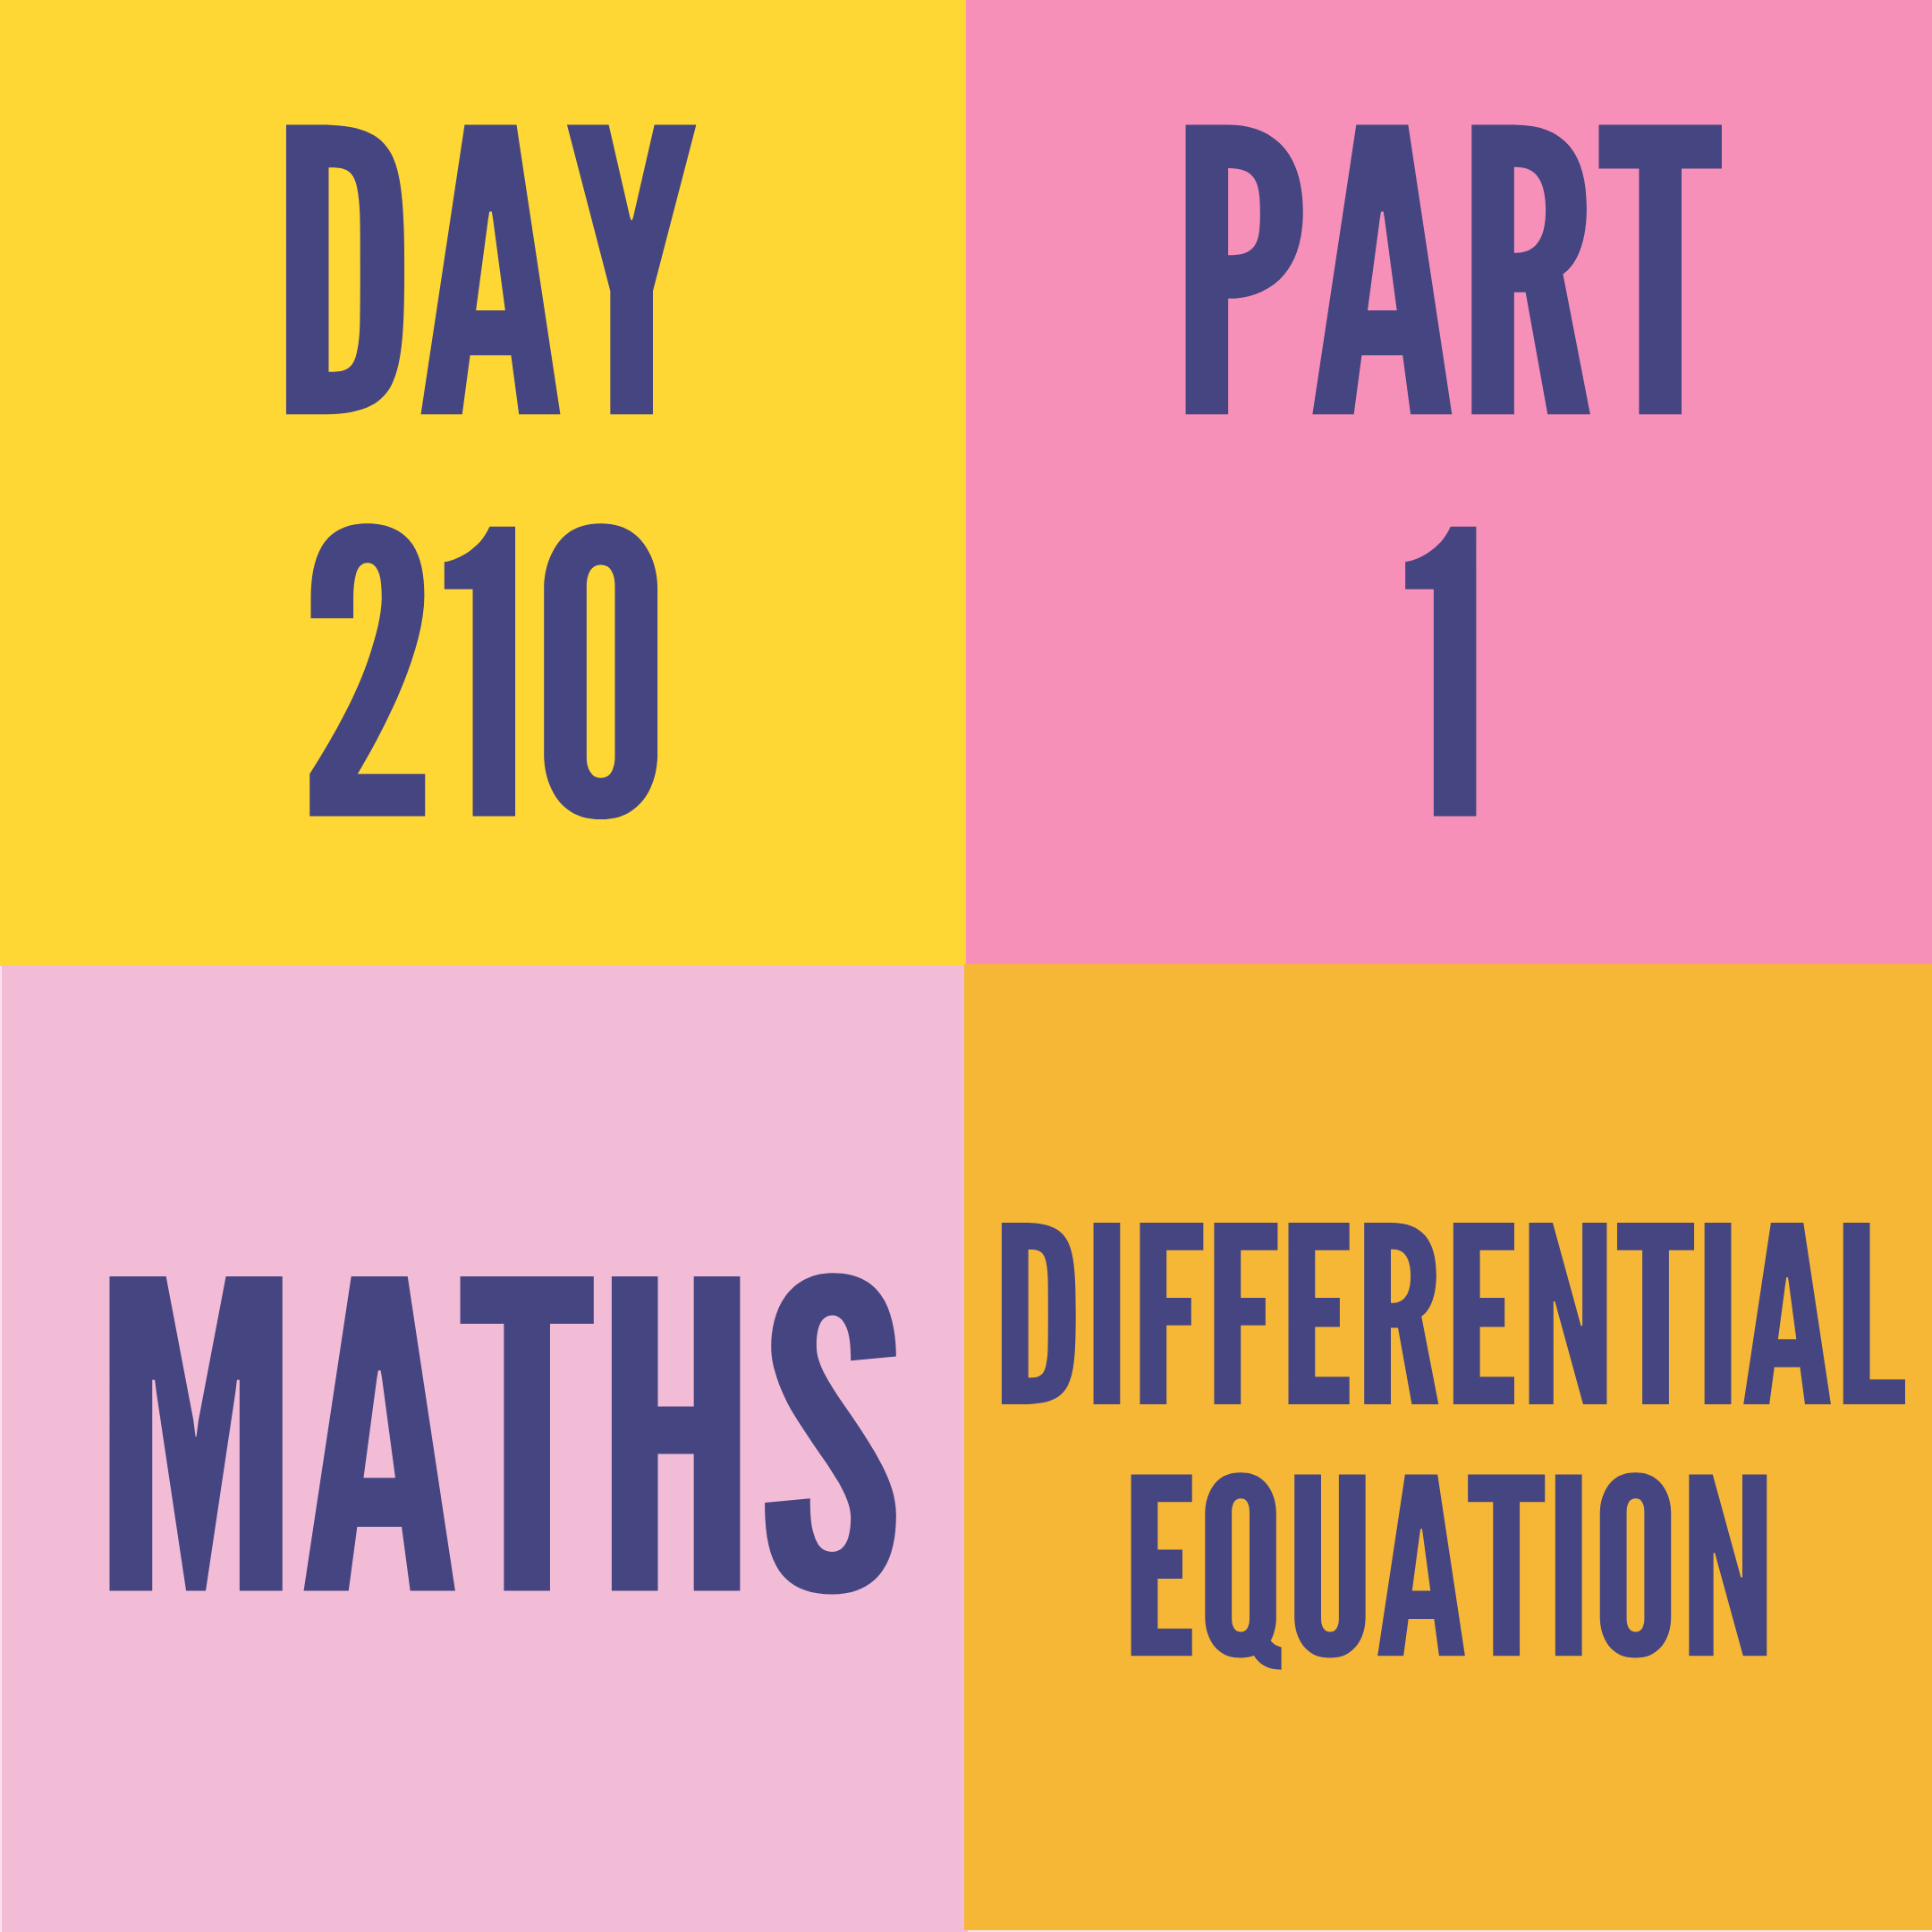 DAY-210 PART-1(TARGET)  DIFFERENTIAL EQUATION